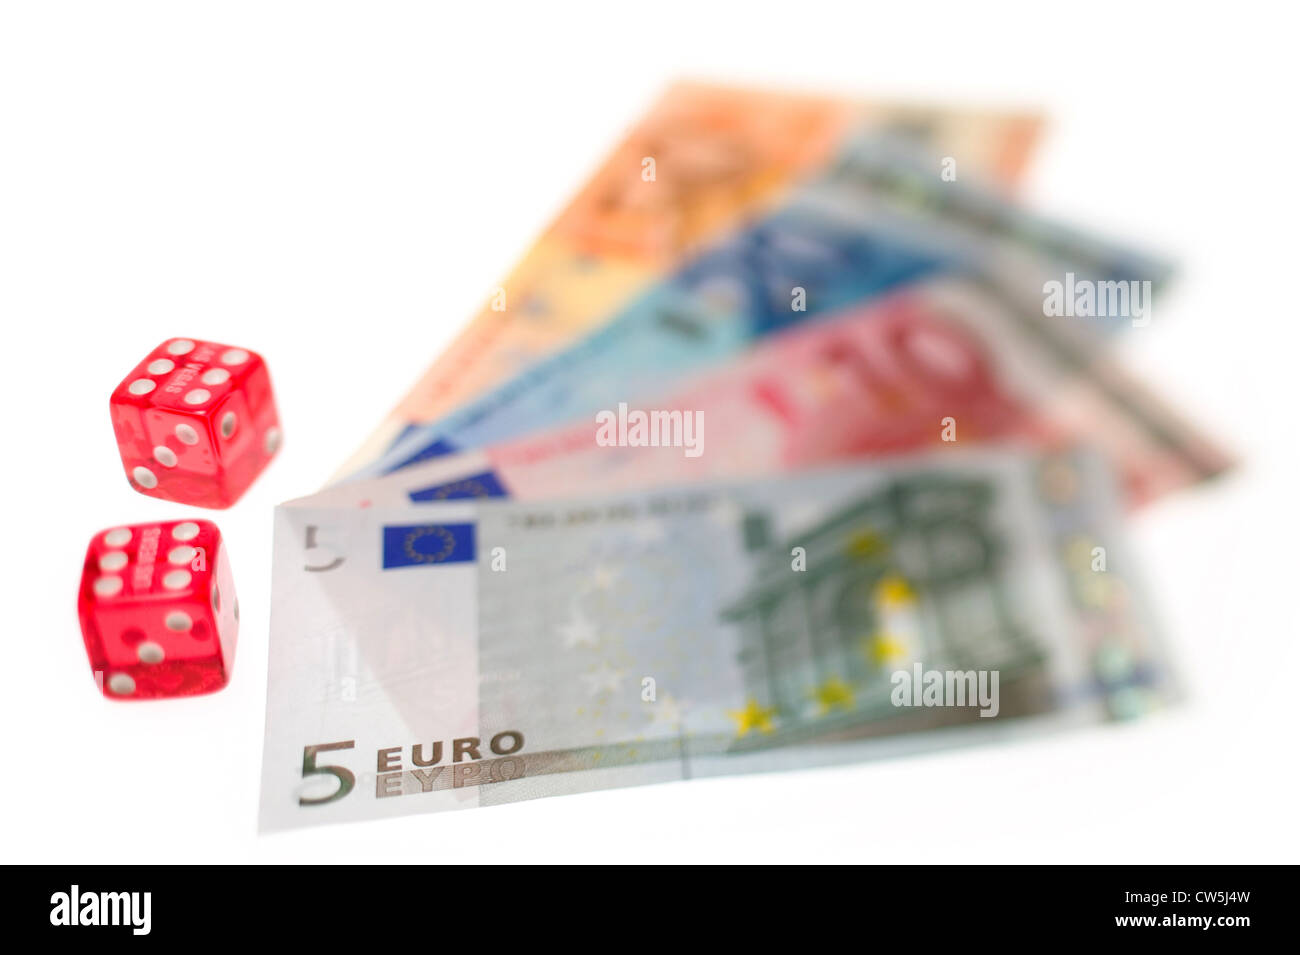 Euro banknotes as Cut - Stock Image